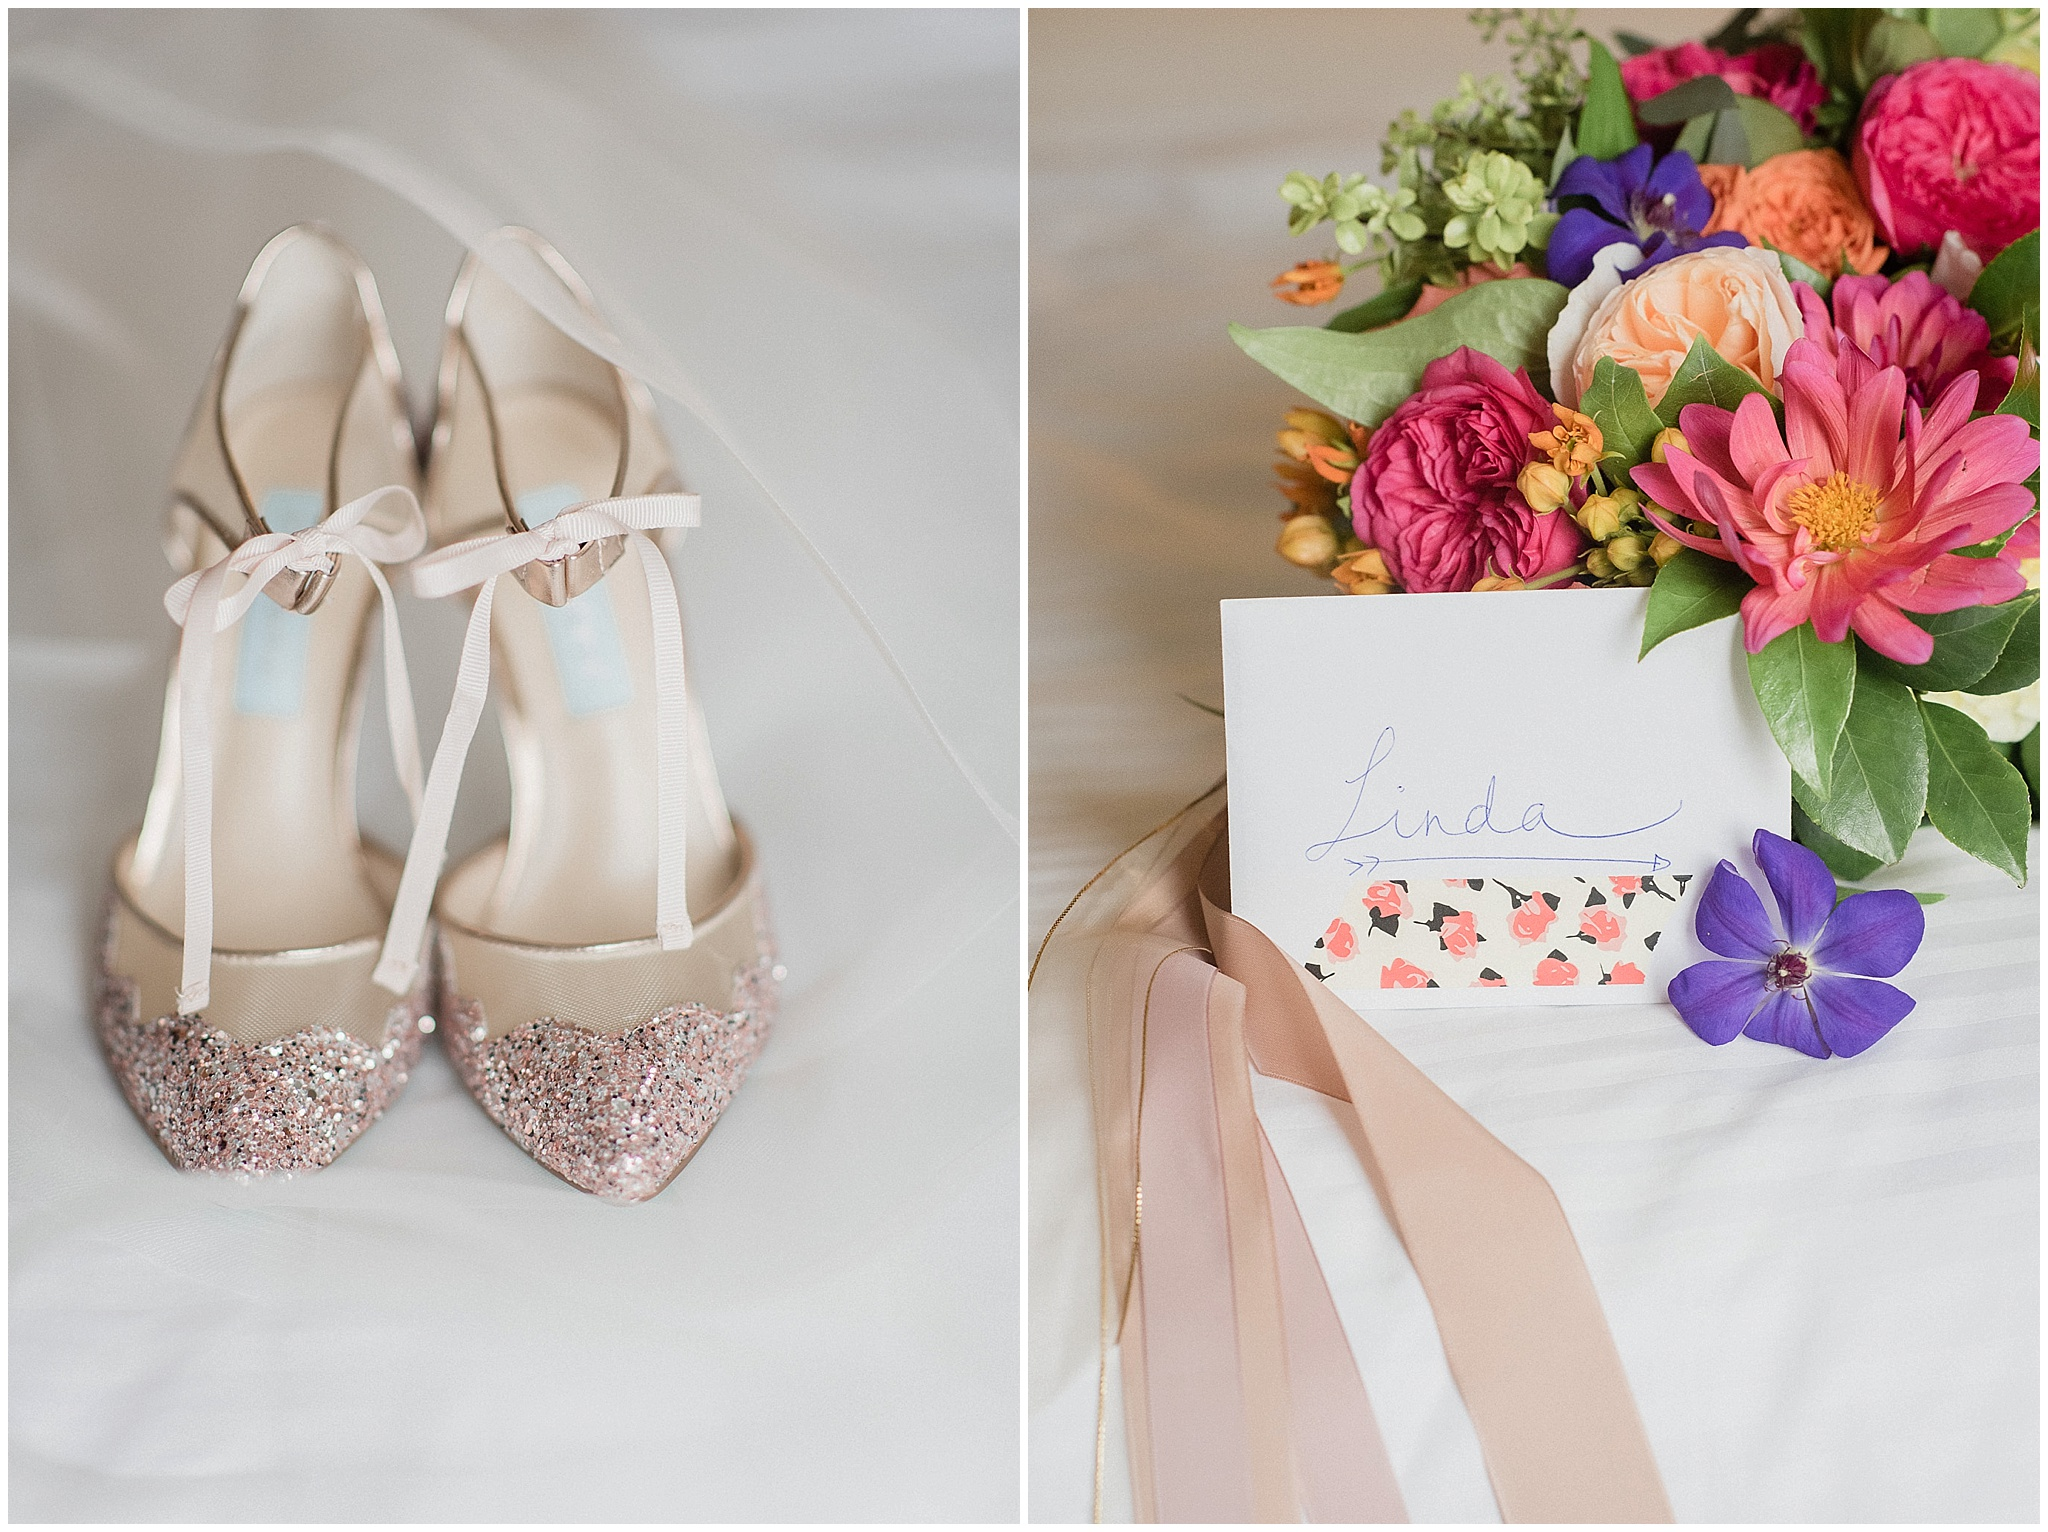 Bridal Details: Betsey Johnson heels photographed by Jenn Kavanagh Photography